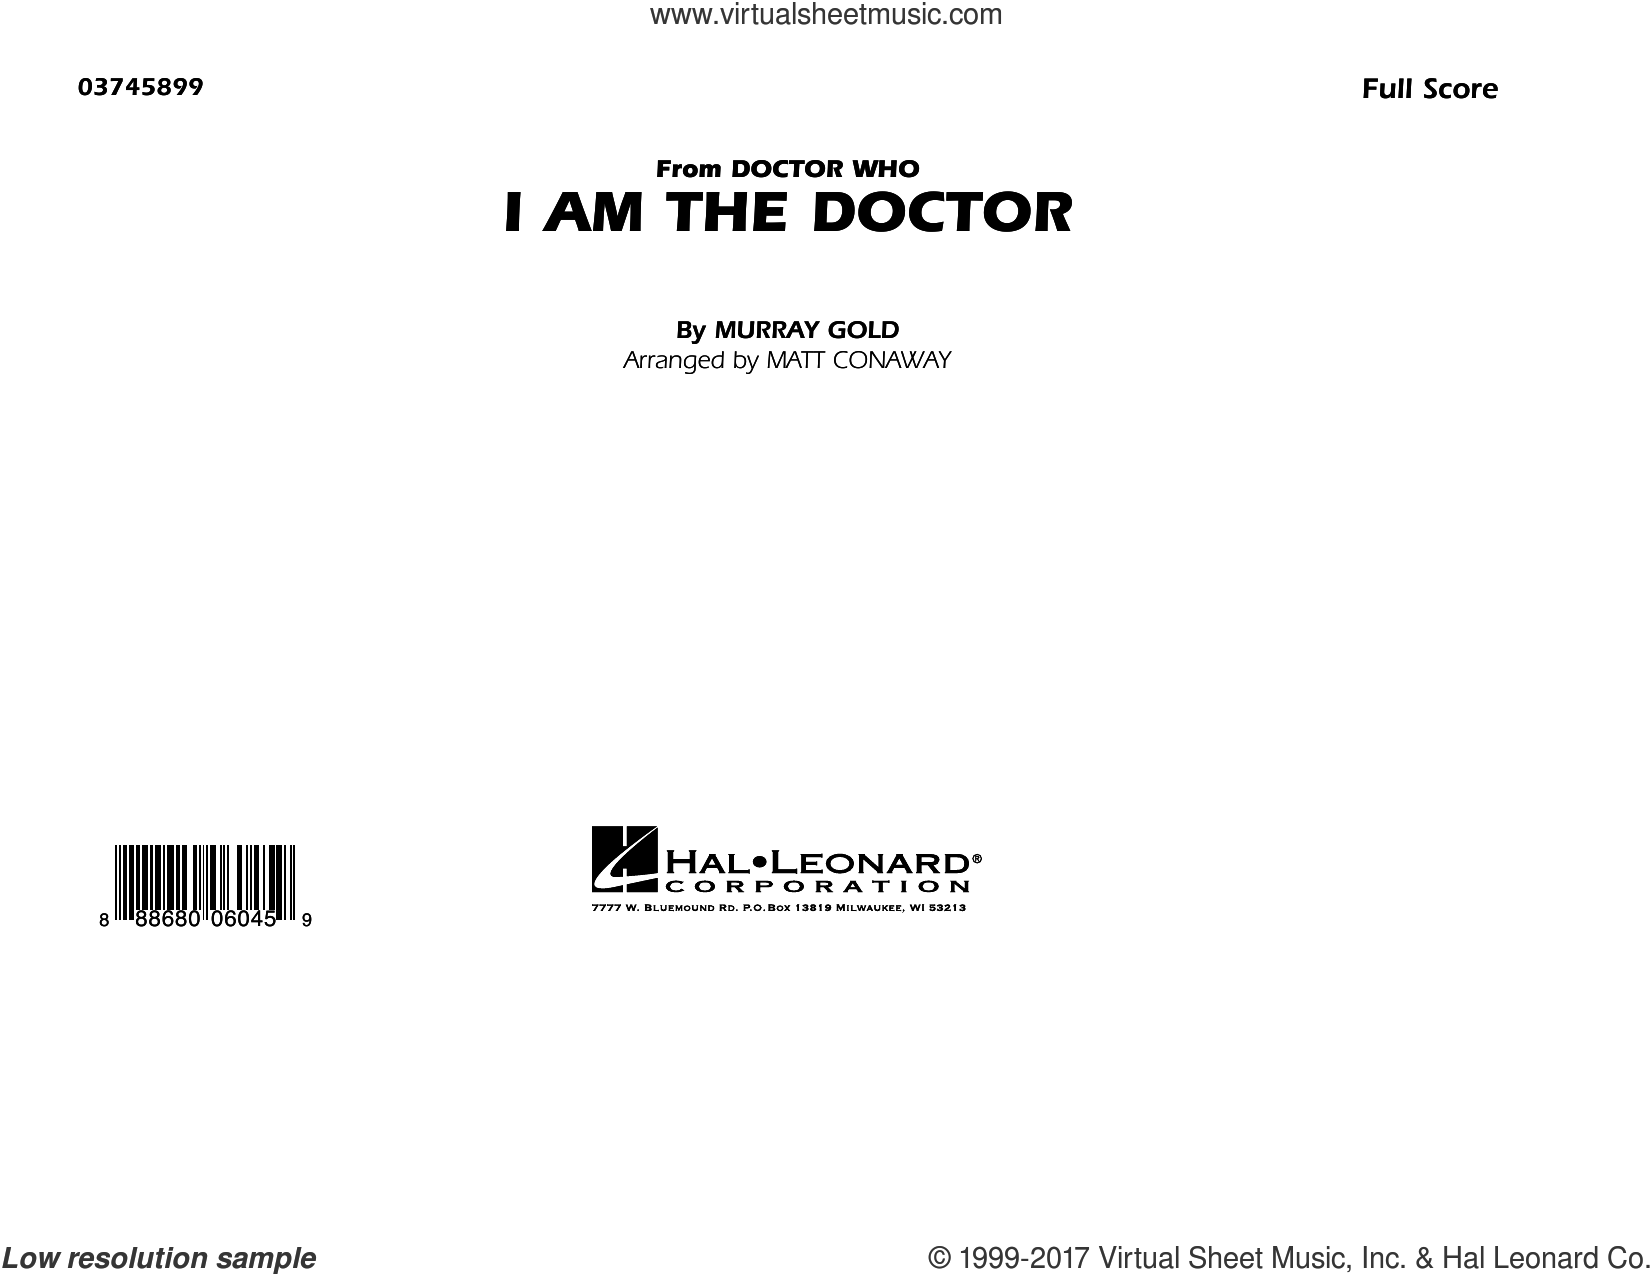 I Am the Doctor (from Doctor Who) (COMPLETE) sheet music for marching band by Matt Conaway and Murray Gold, intermediate